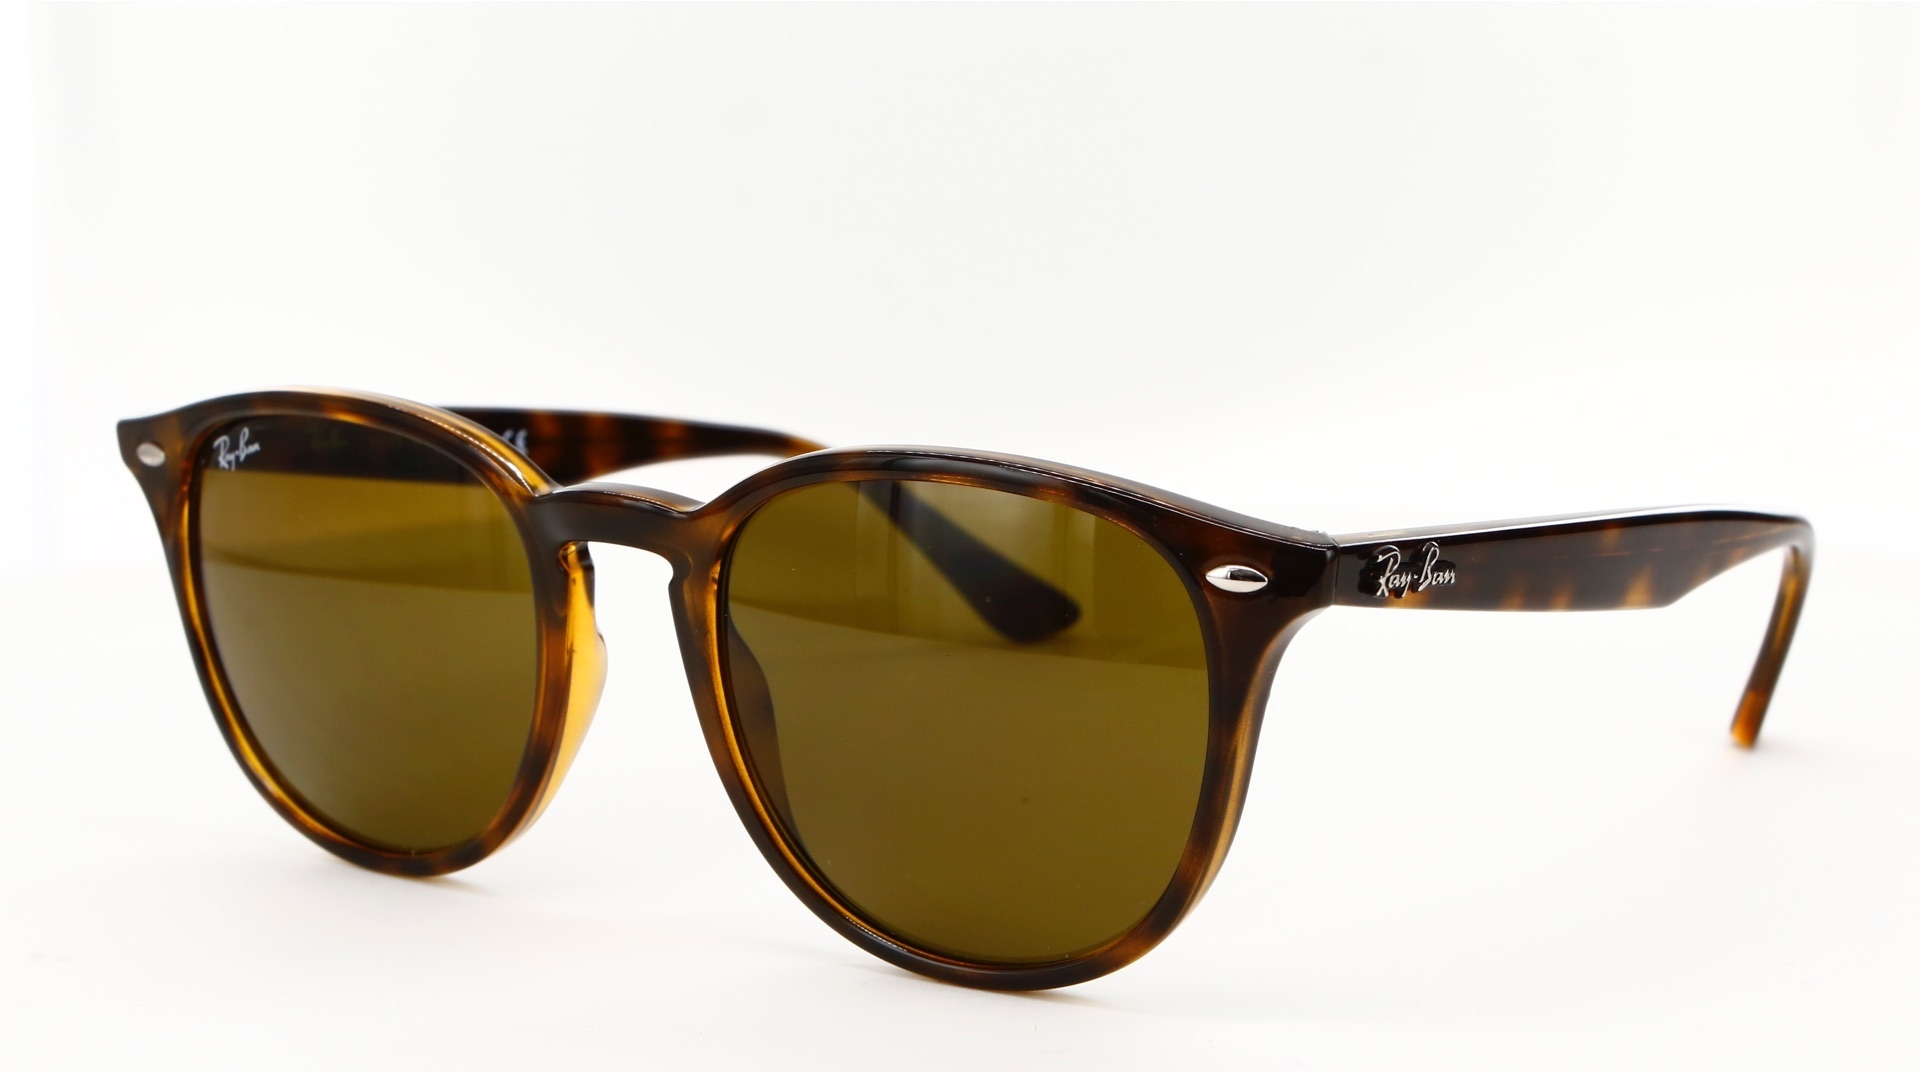 Ray-Ban - ref: 76880